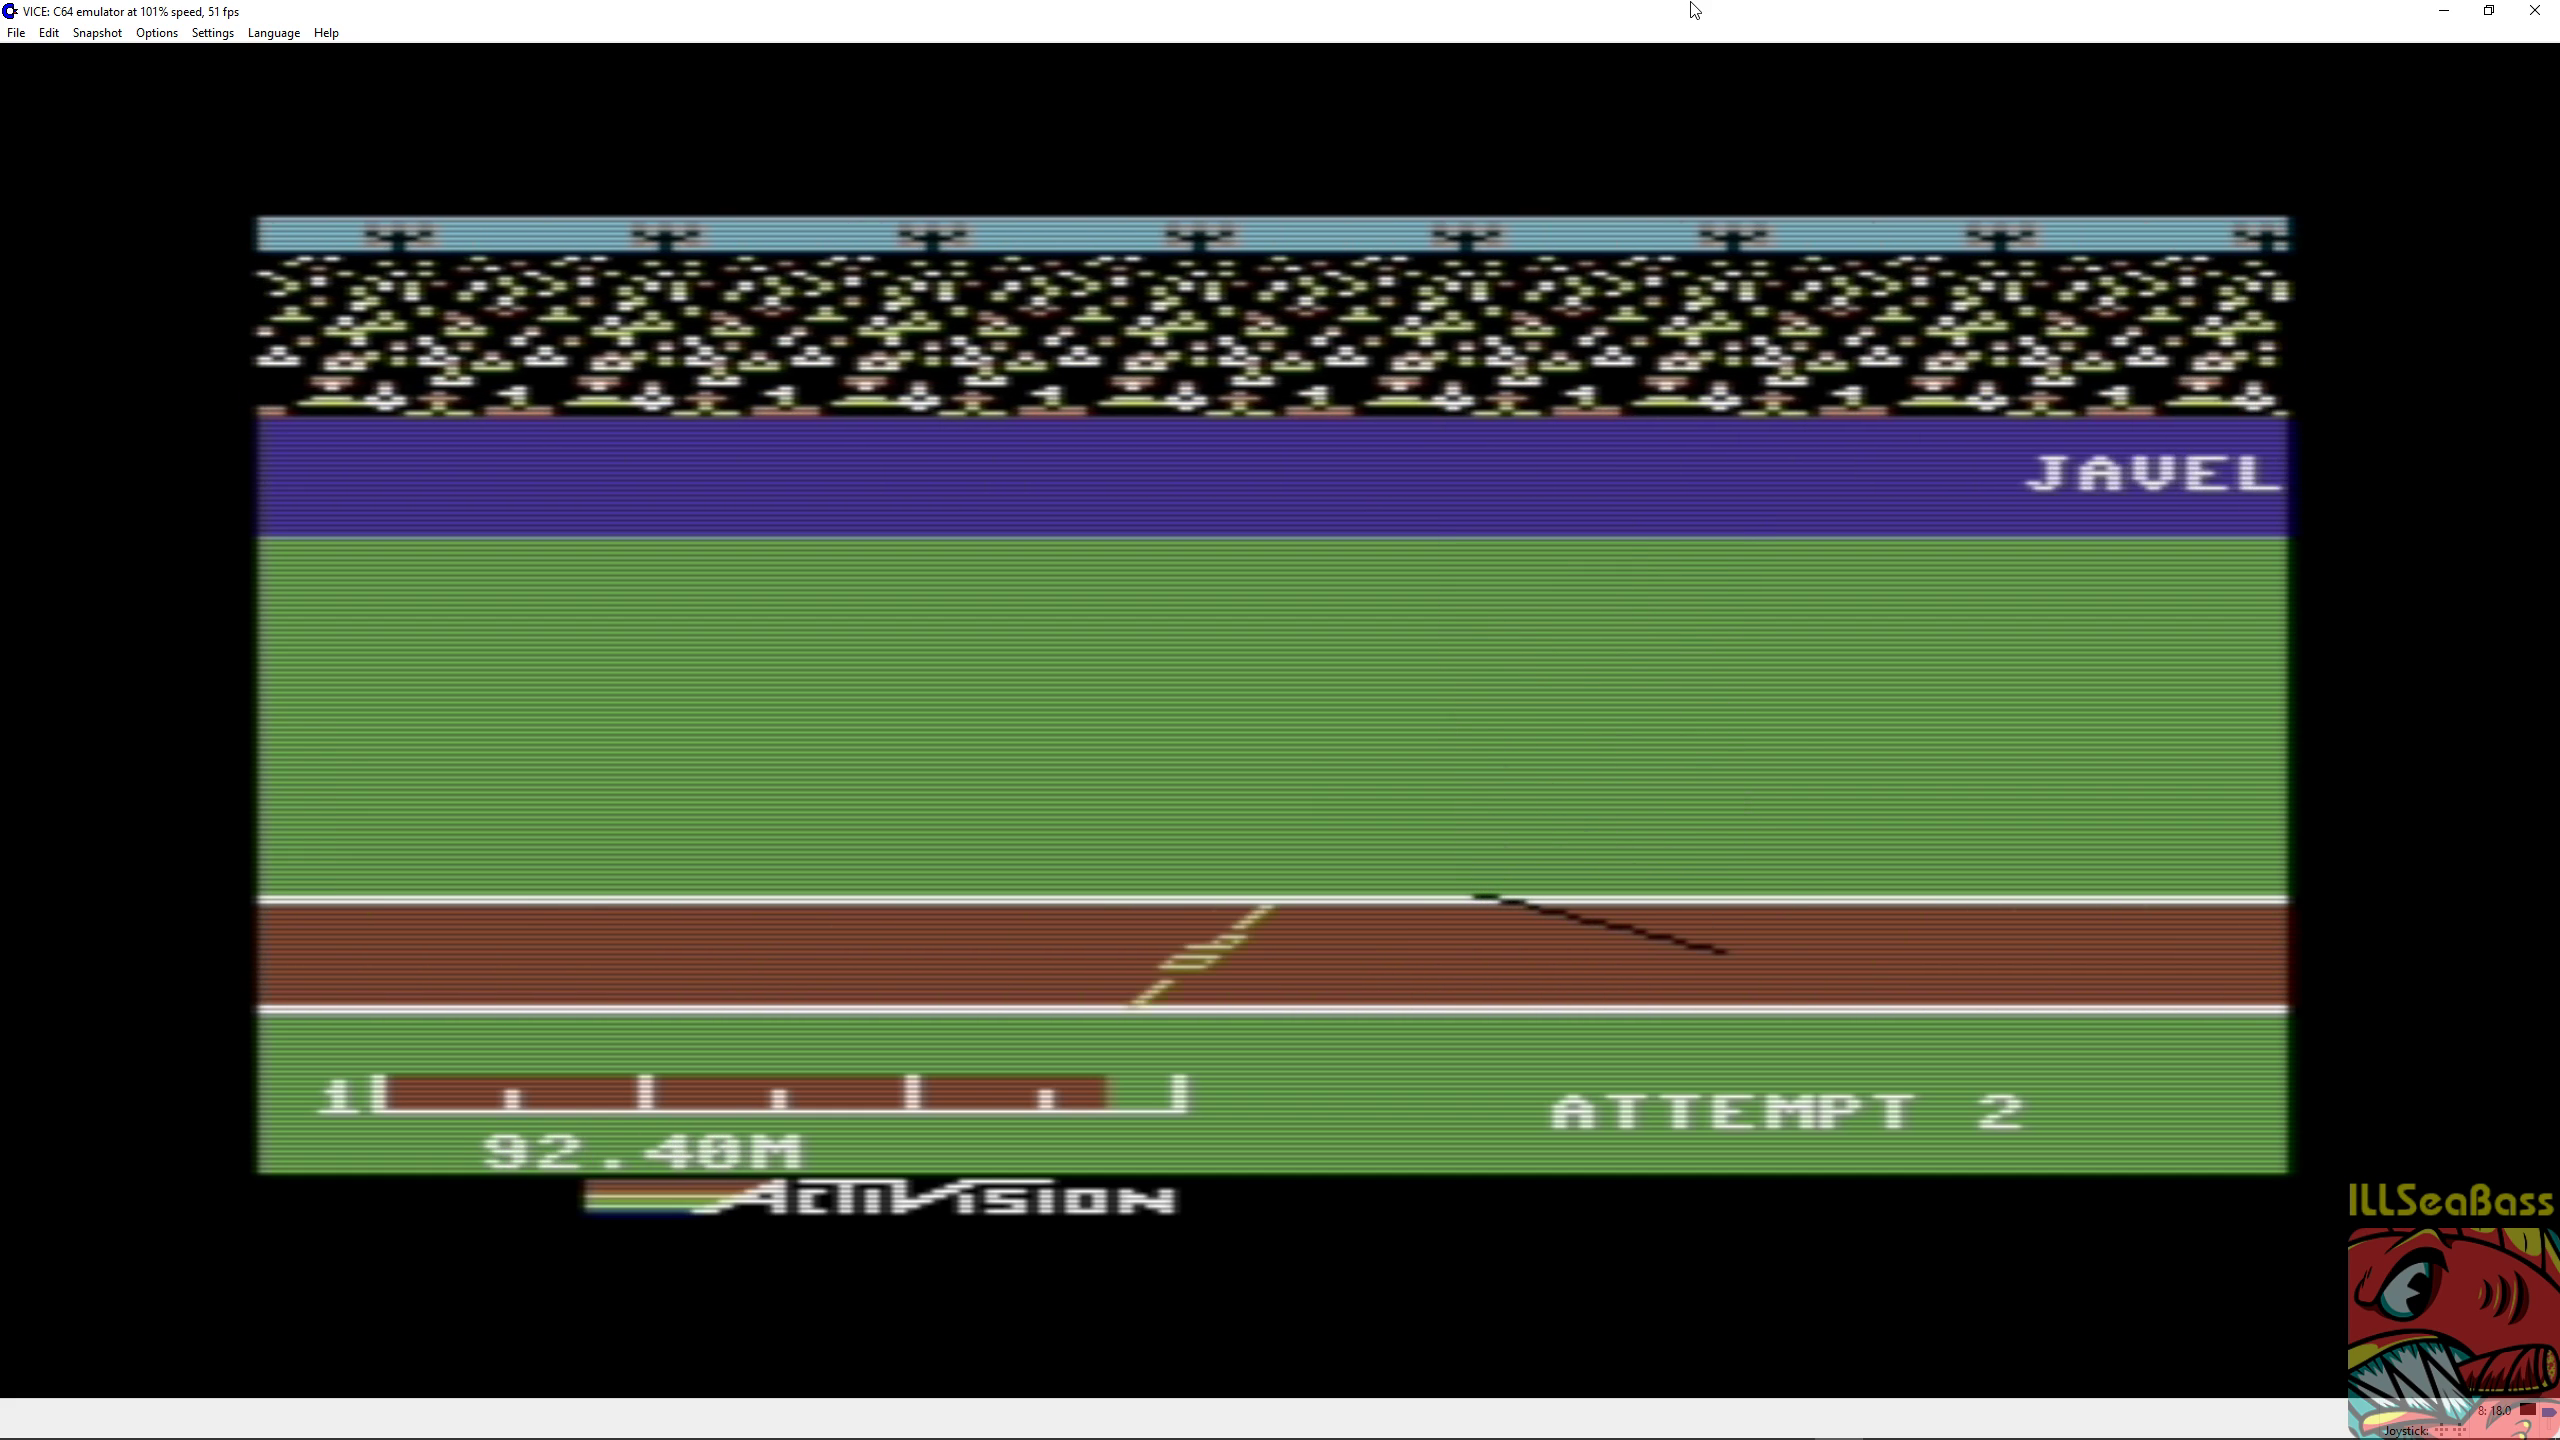 ILLSeaBass: Decathlon: Javelin [Meters] (Commodore 64 Emulated) 9,240 points on 2018-06-30 12:18:20